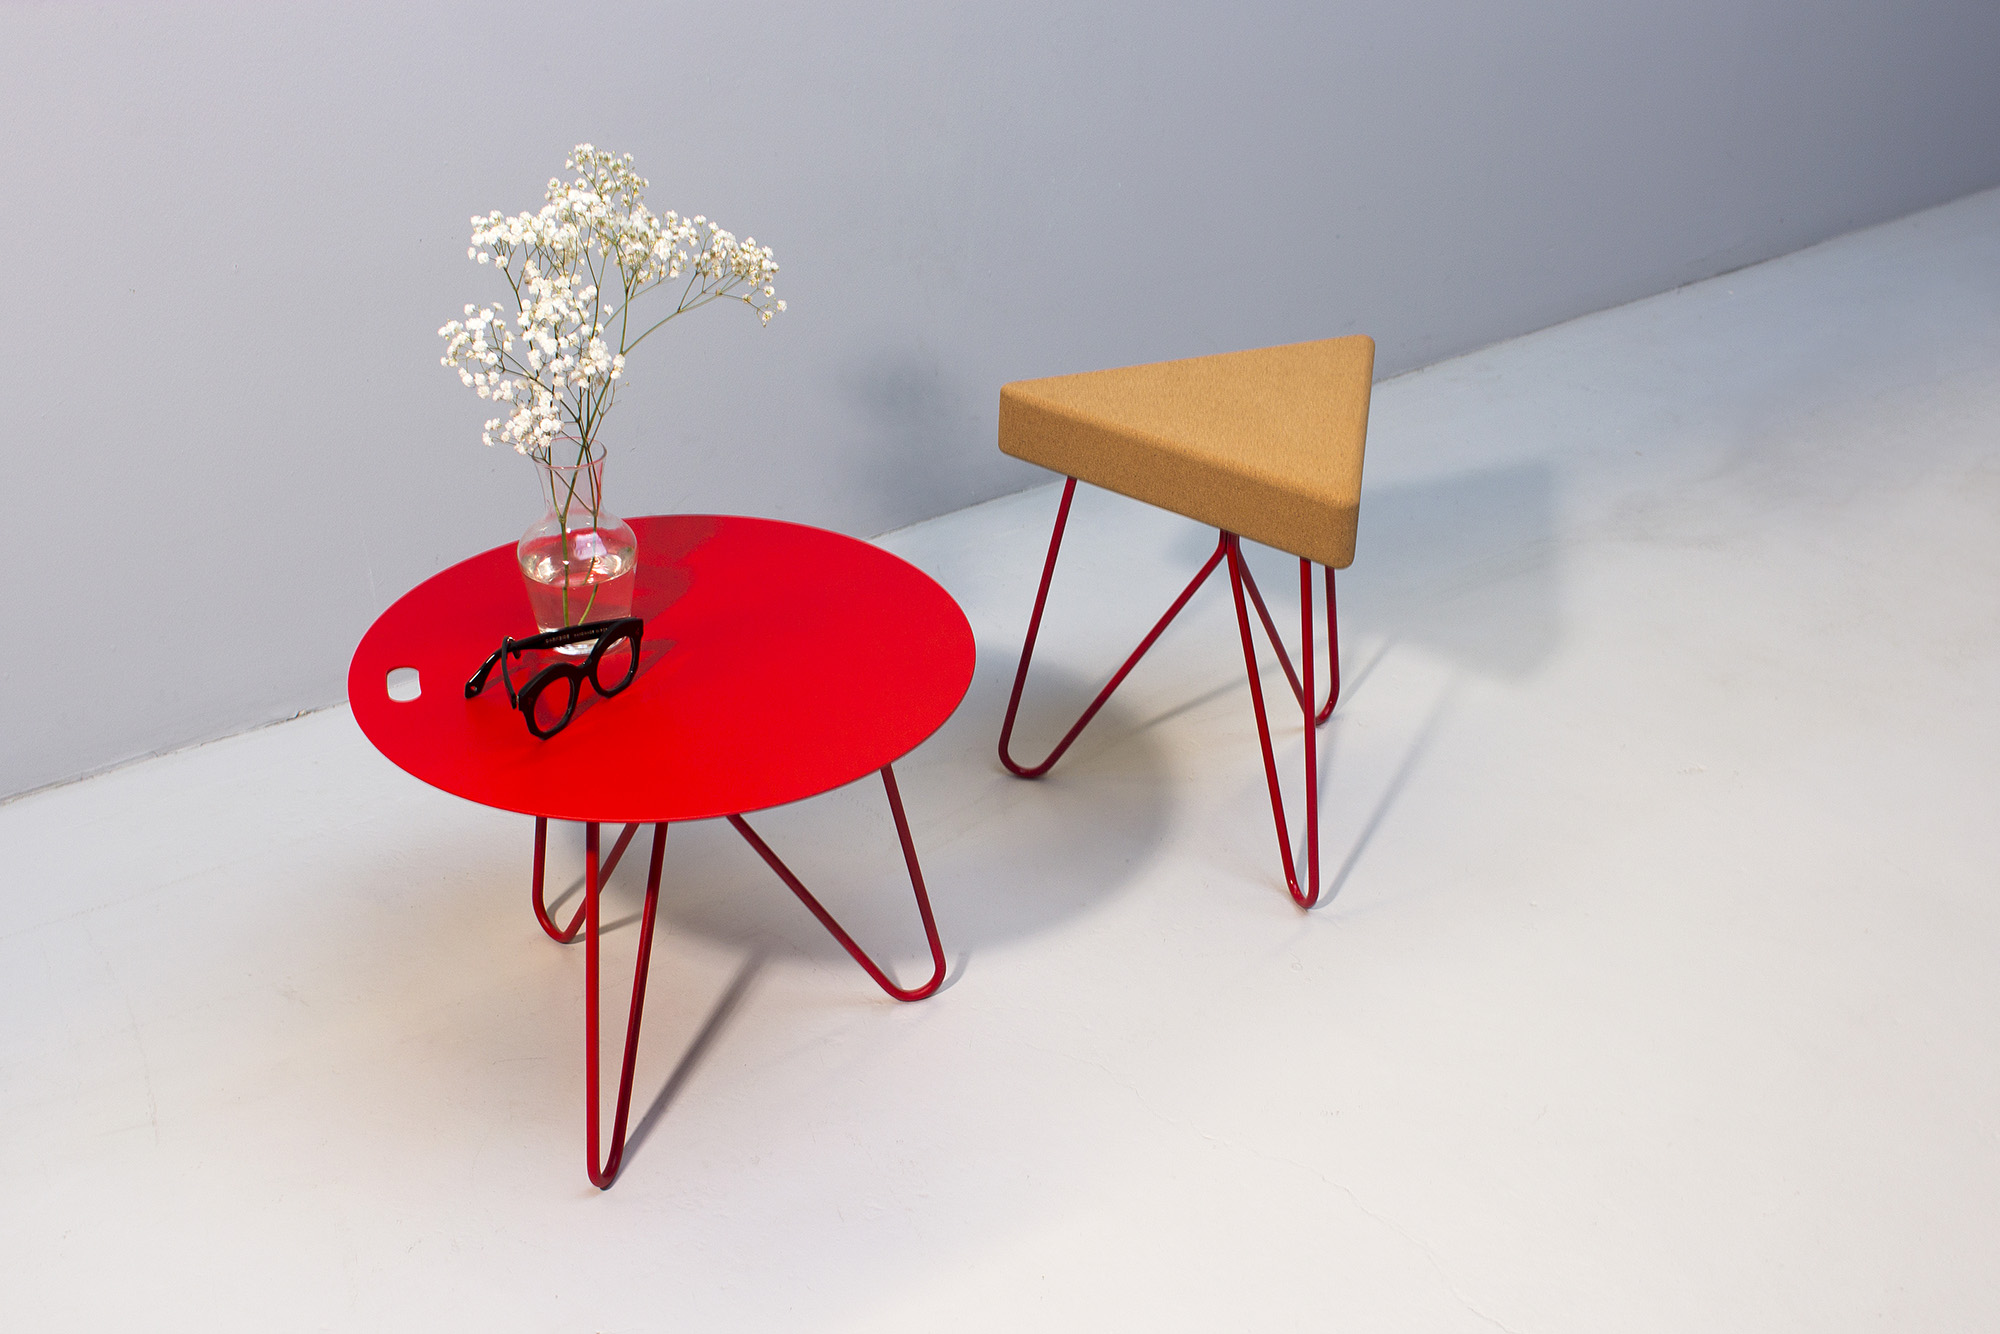 low-Galula-tres-stool-table-light-red-2.jpg